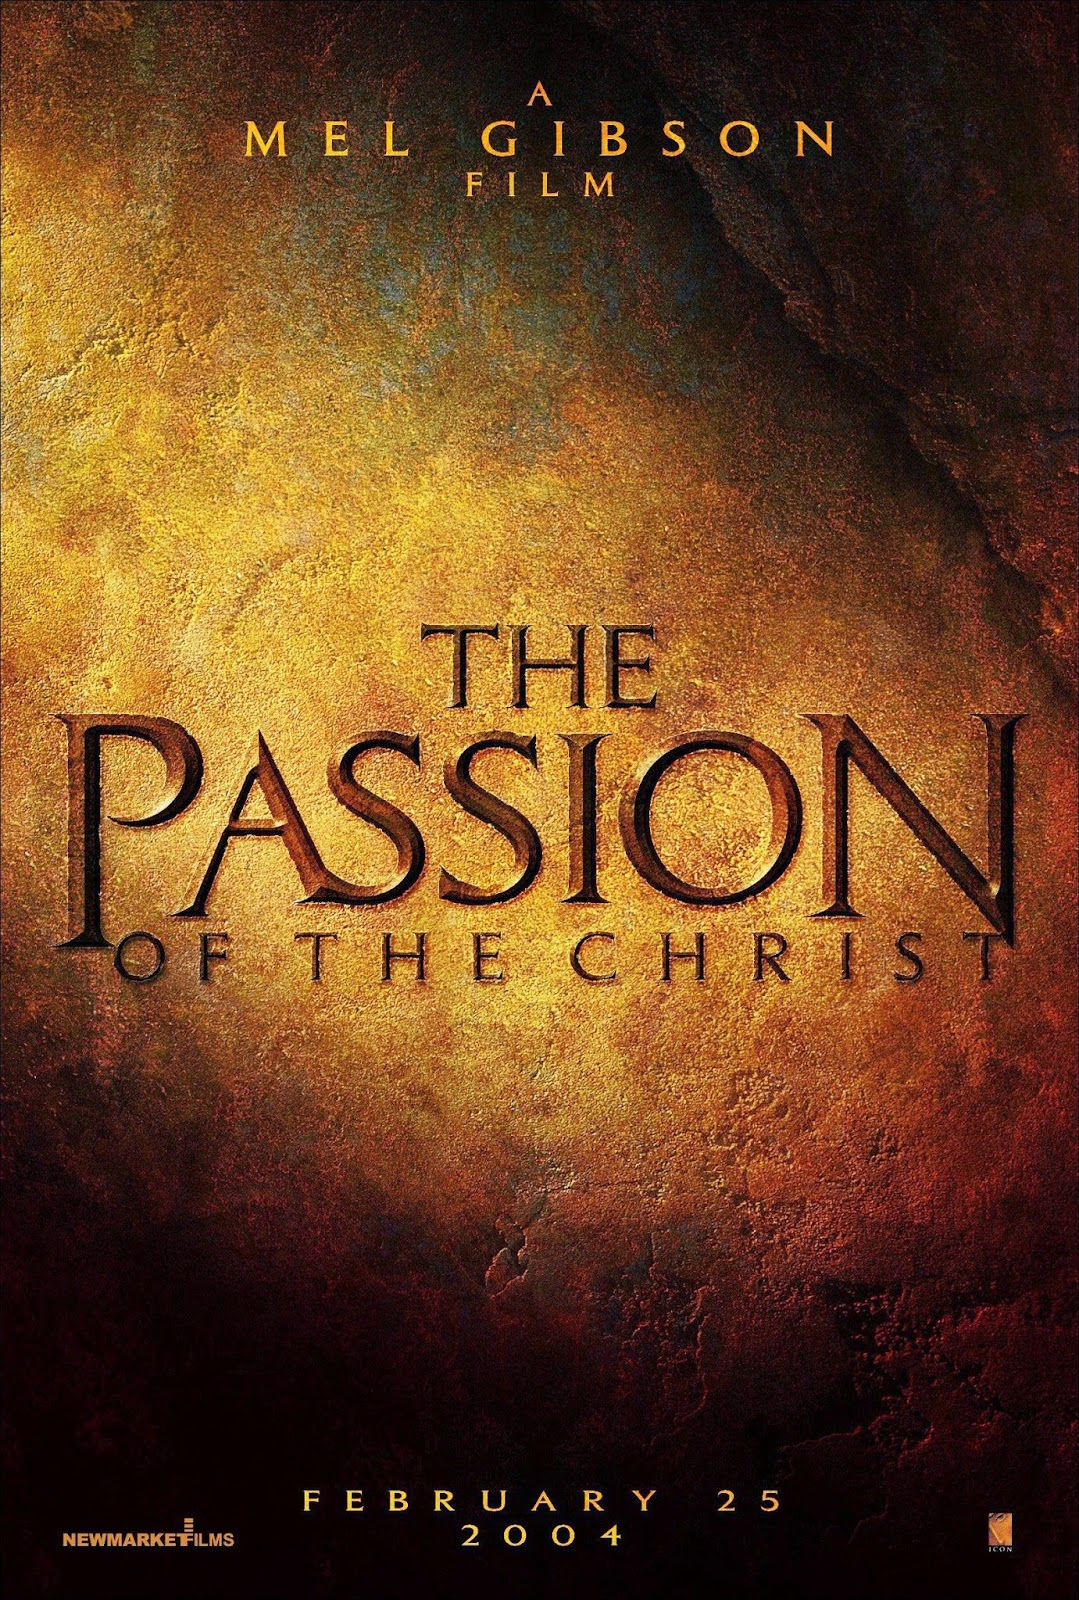 The passion of the christ stock photos & the passion of the christ.